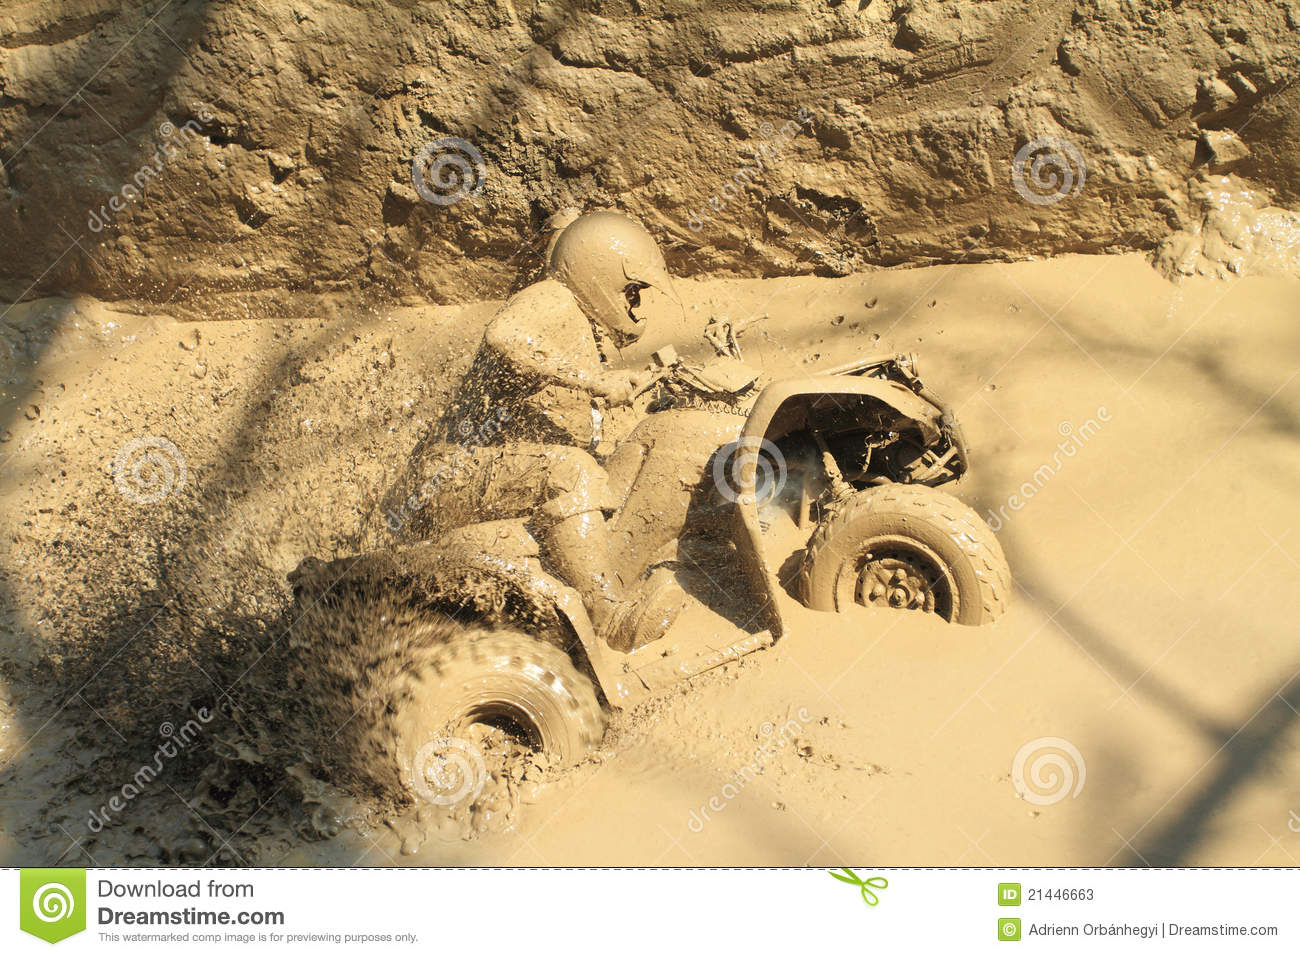 All Terrain Bike >> Man Badly Stuck In Mud With His Quadbike Stock Photos ...